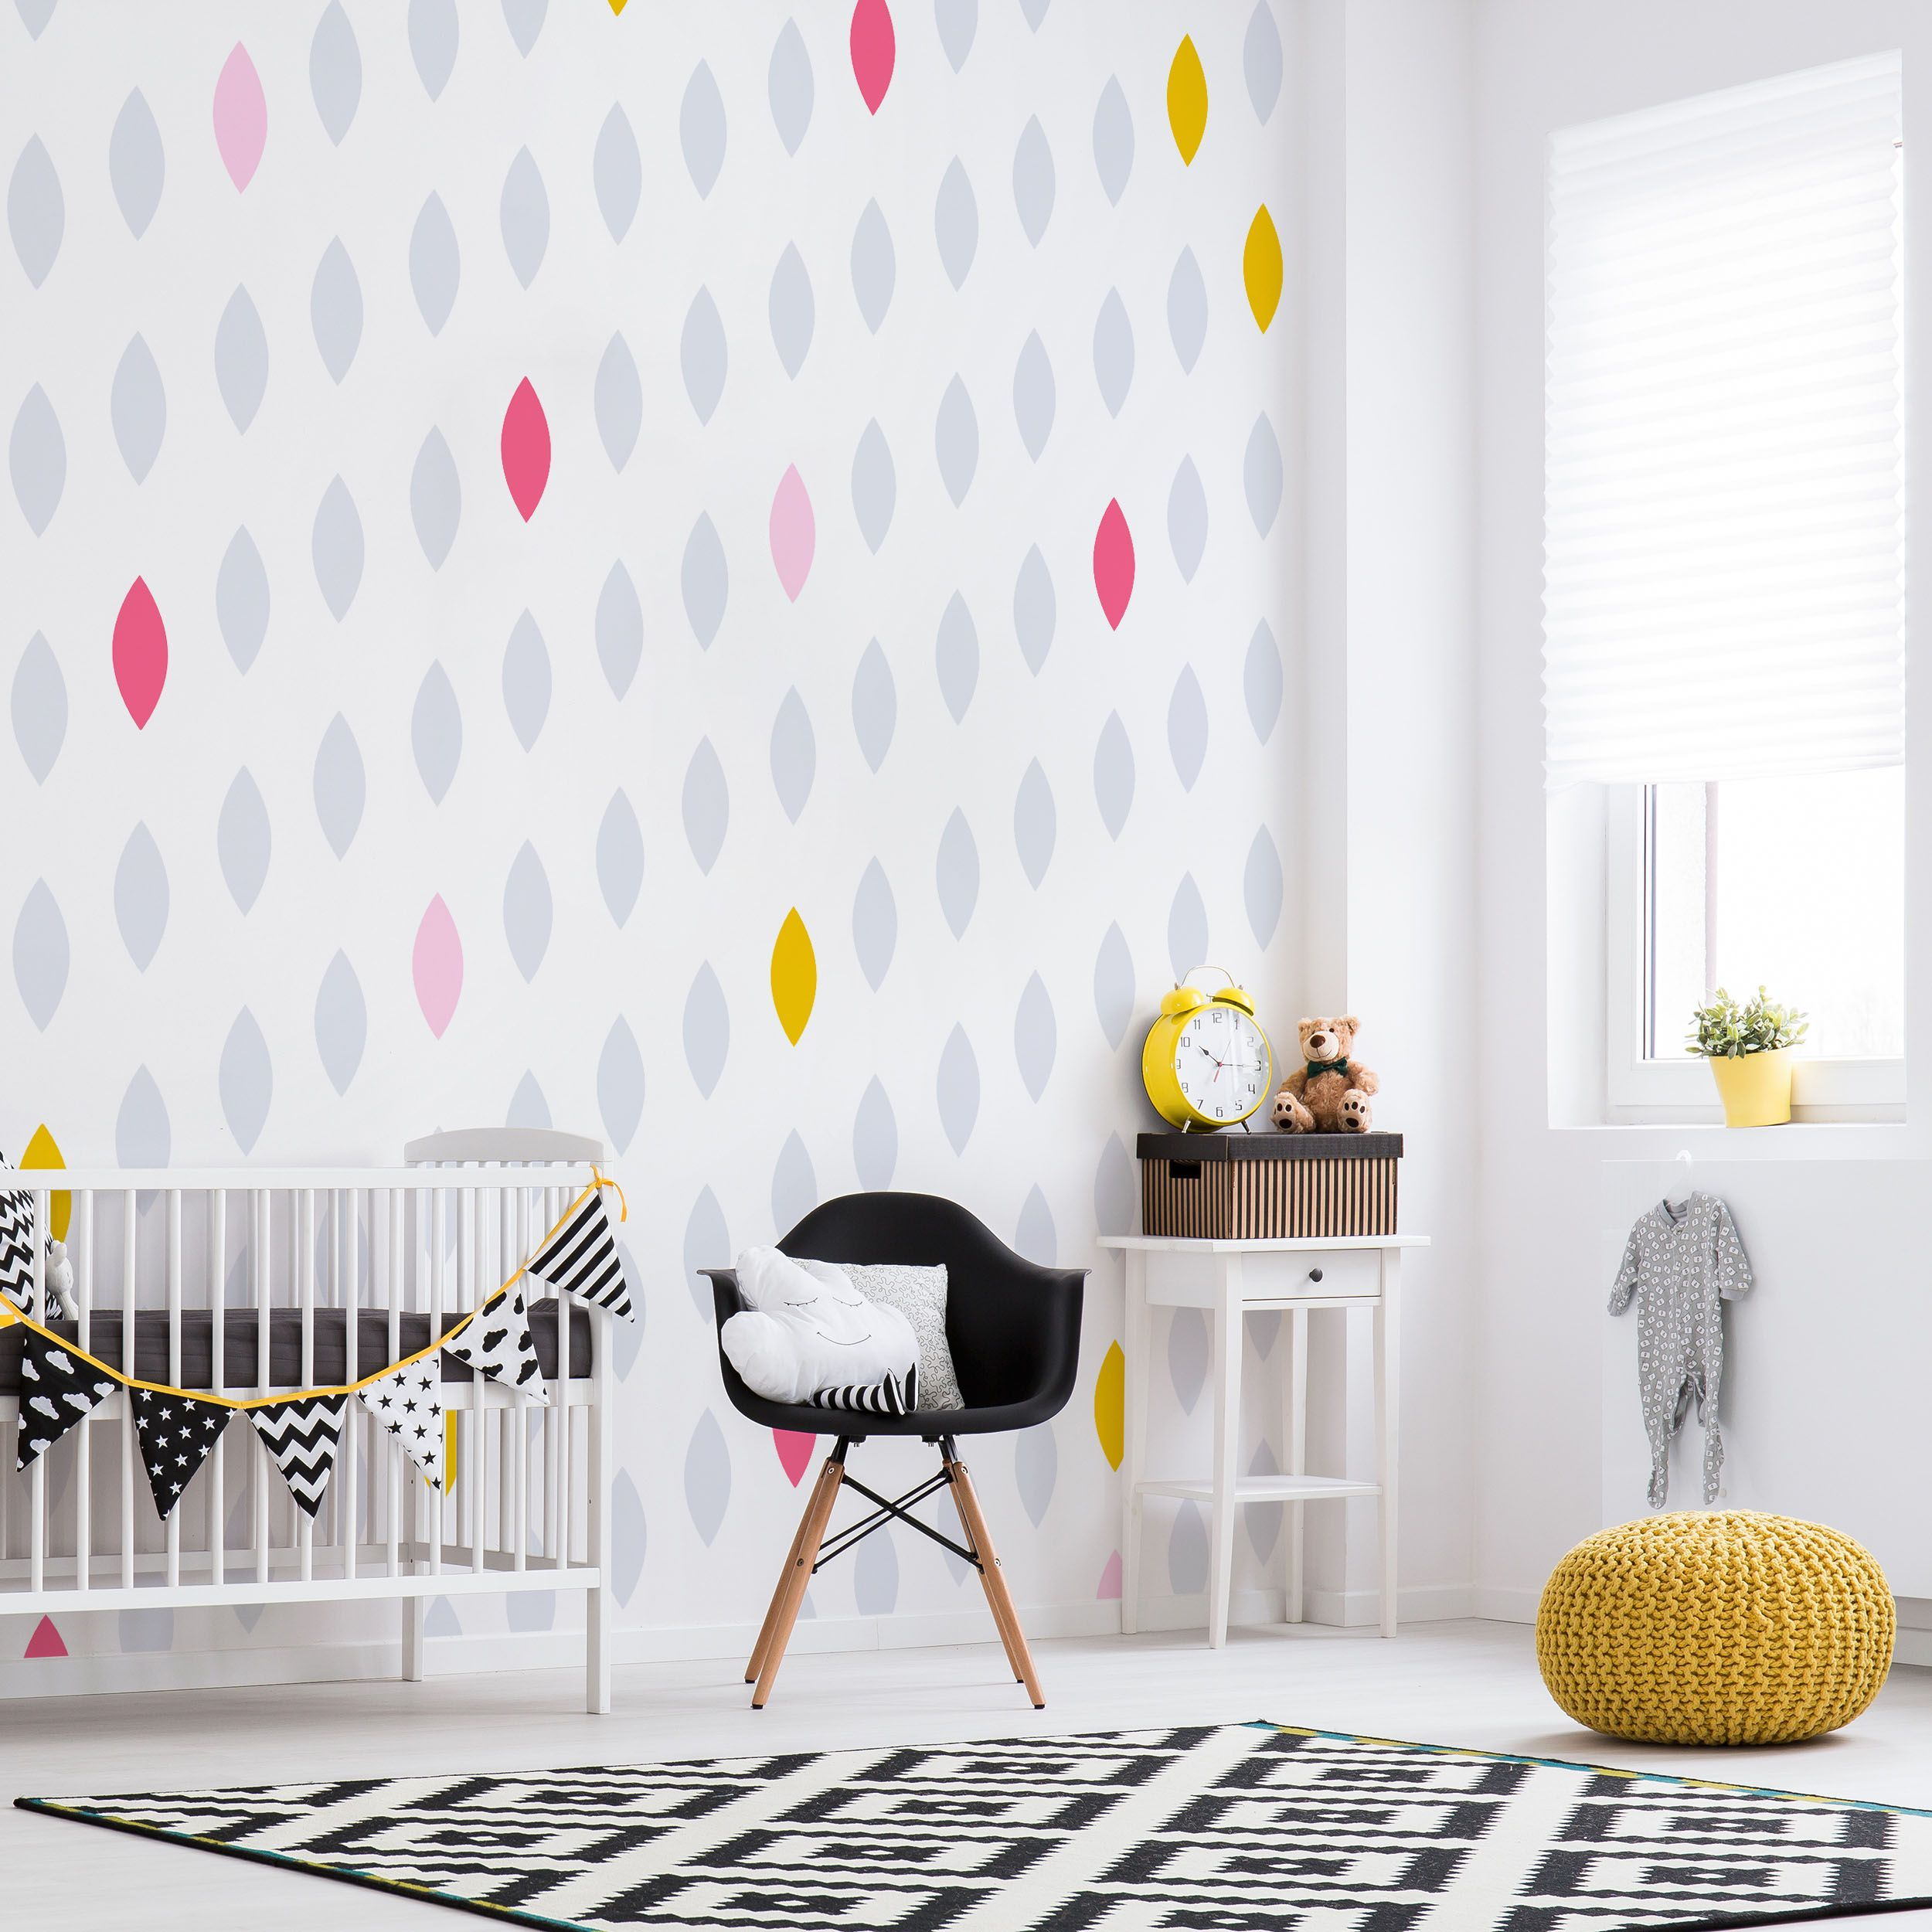 Scandinavian Style Kids Room: Scandinavian Style Kids Room